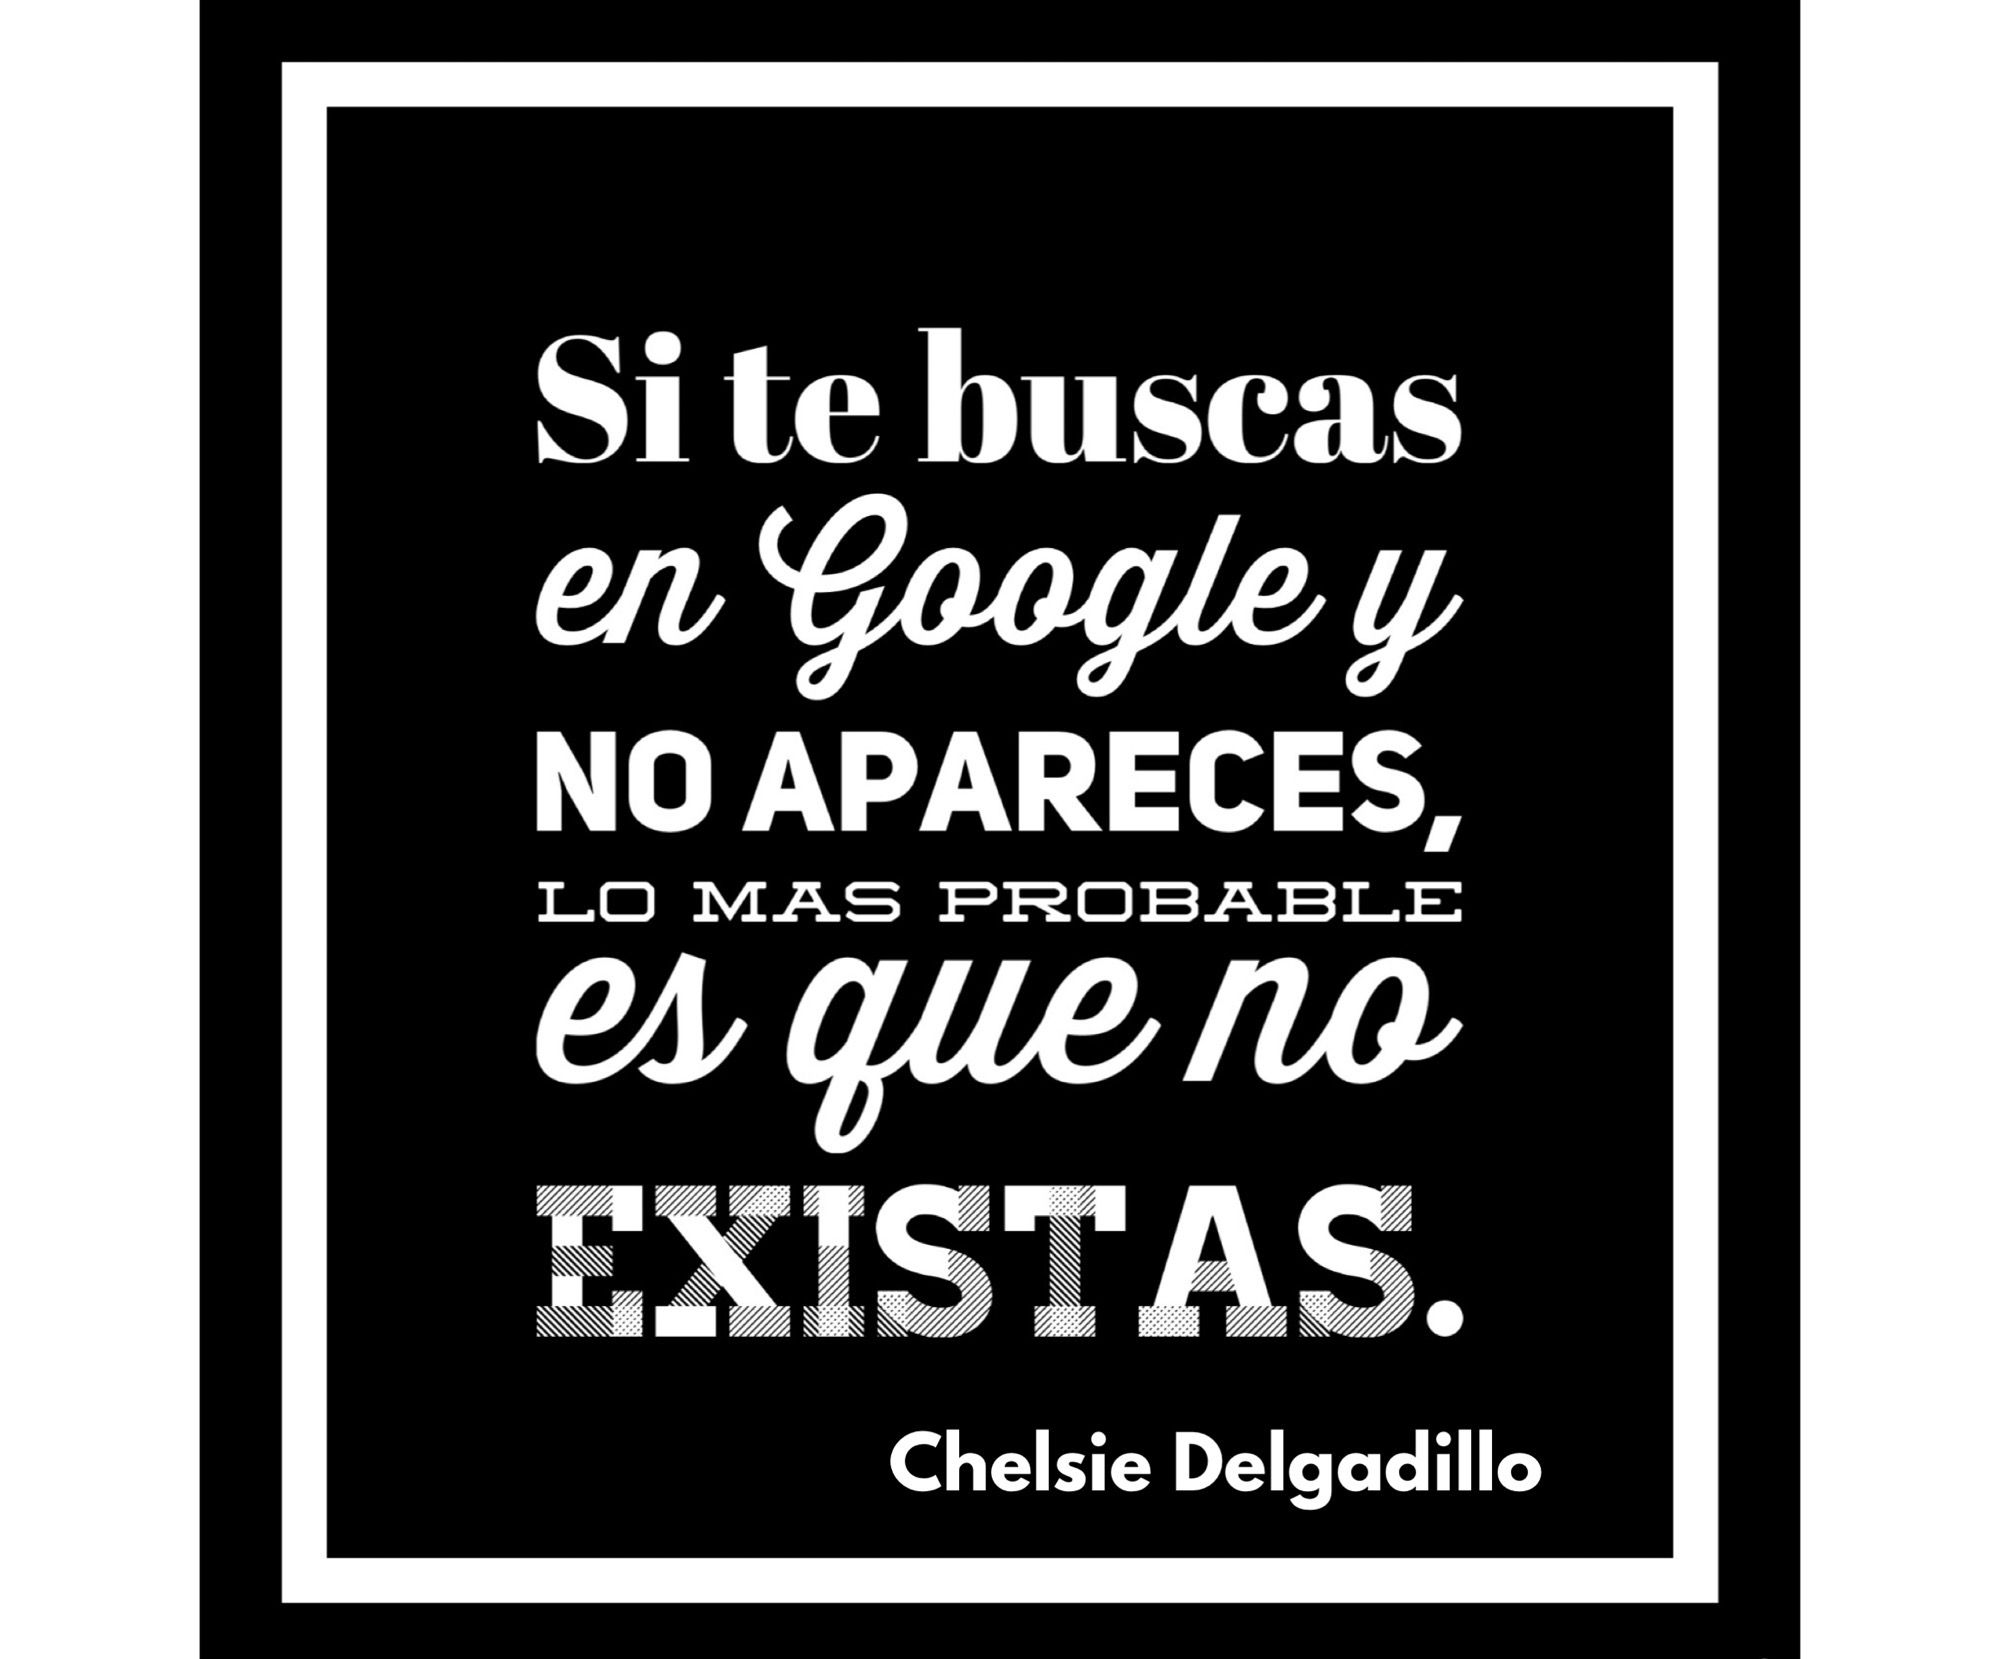 Beauty Marketing by Chelsie Delgadillo, especialista en mercadotecnia de la belleza  Si te buscas en Google y no apareces , es que no existes